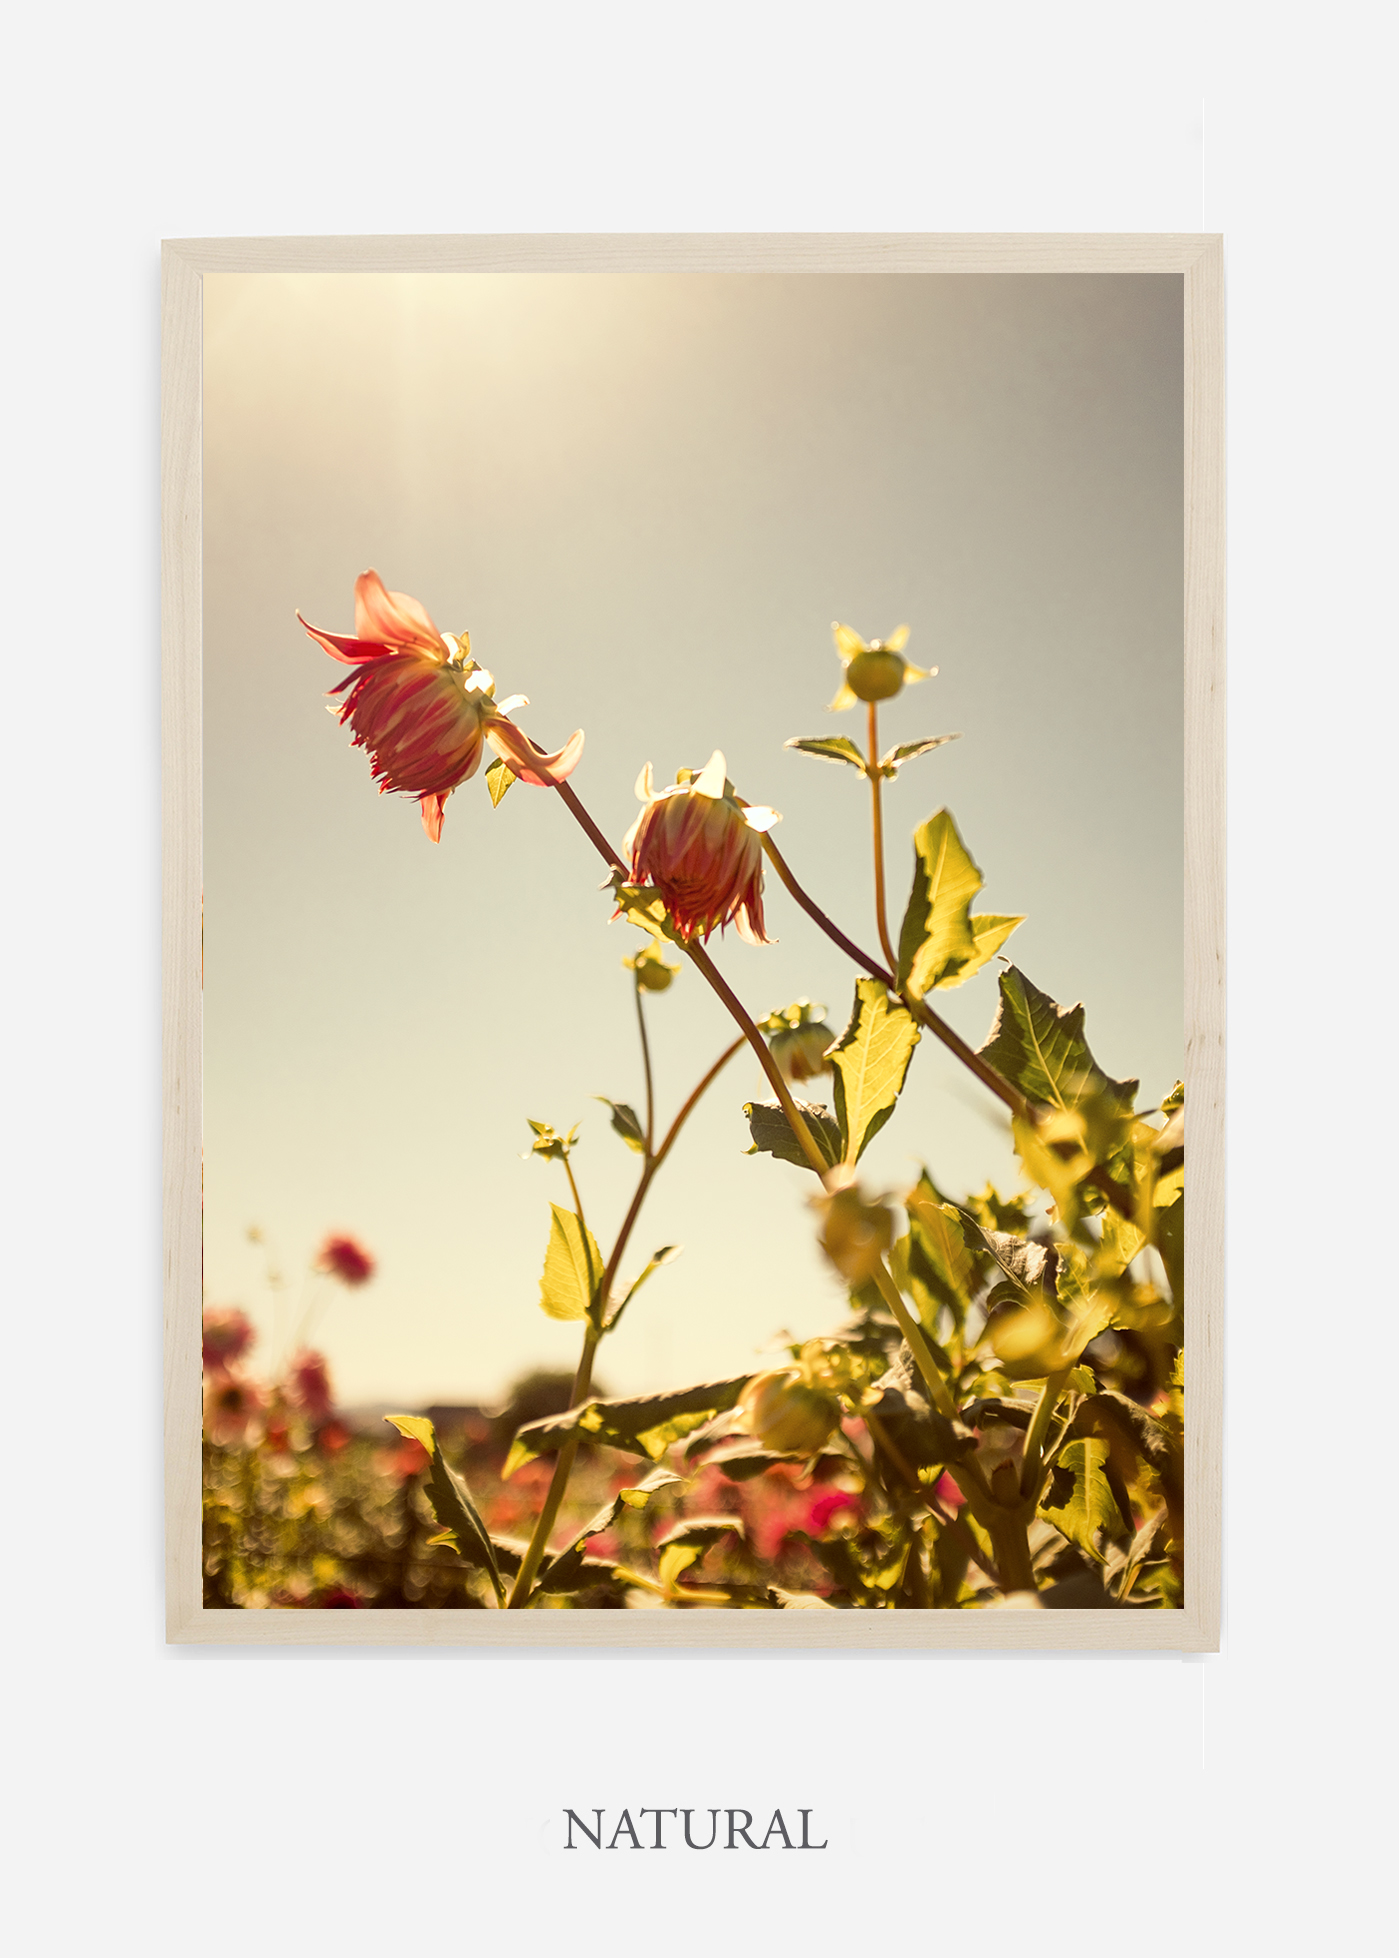 flora-no-10-natural-custom-frame-dahlia-print-floral-print-floral-art-wilder-california-botanical-prints-home-decor-design-prints-print-shop.jpg